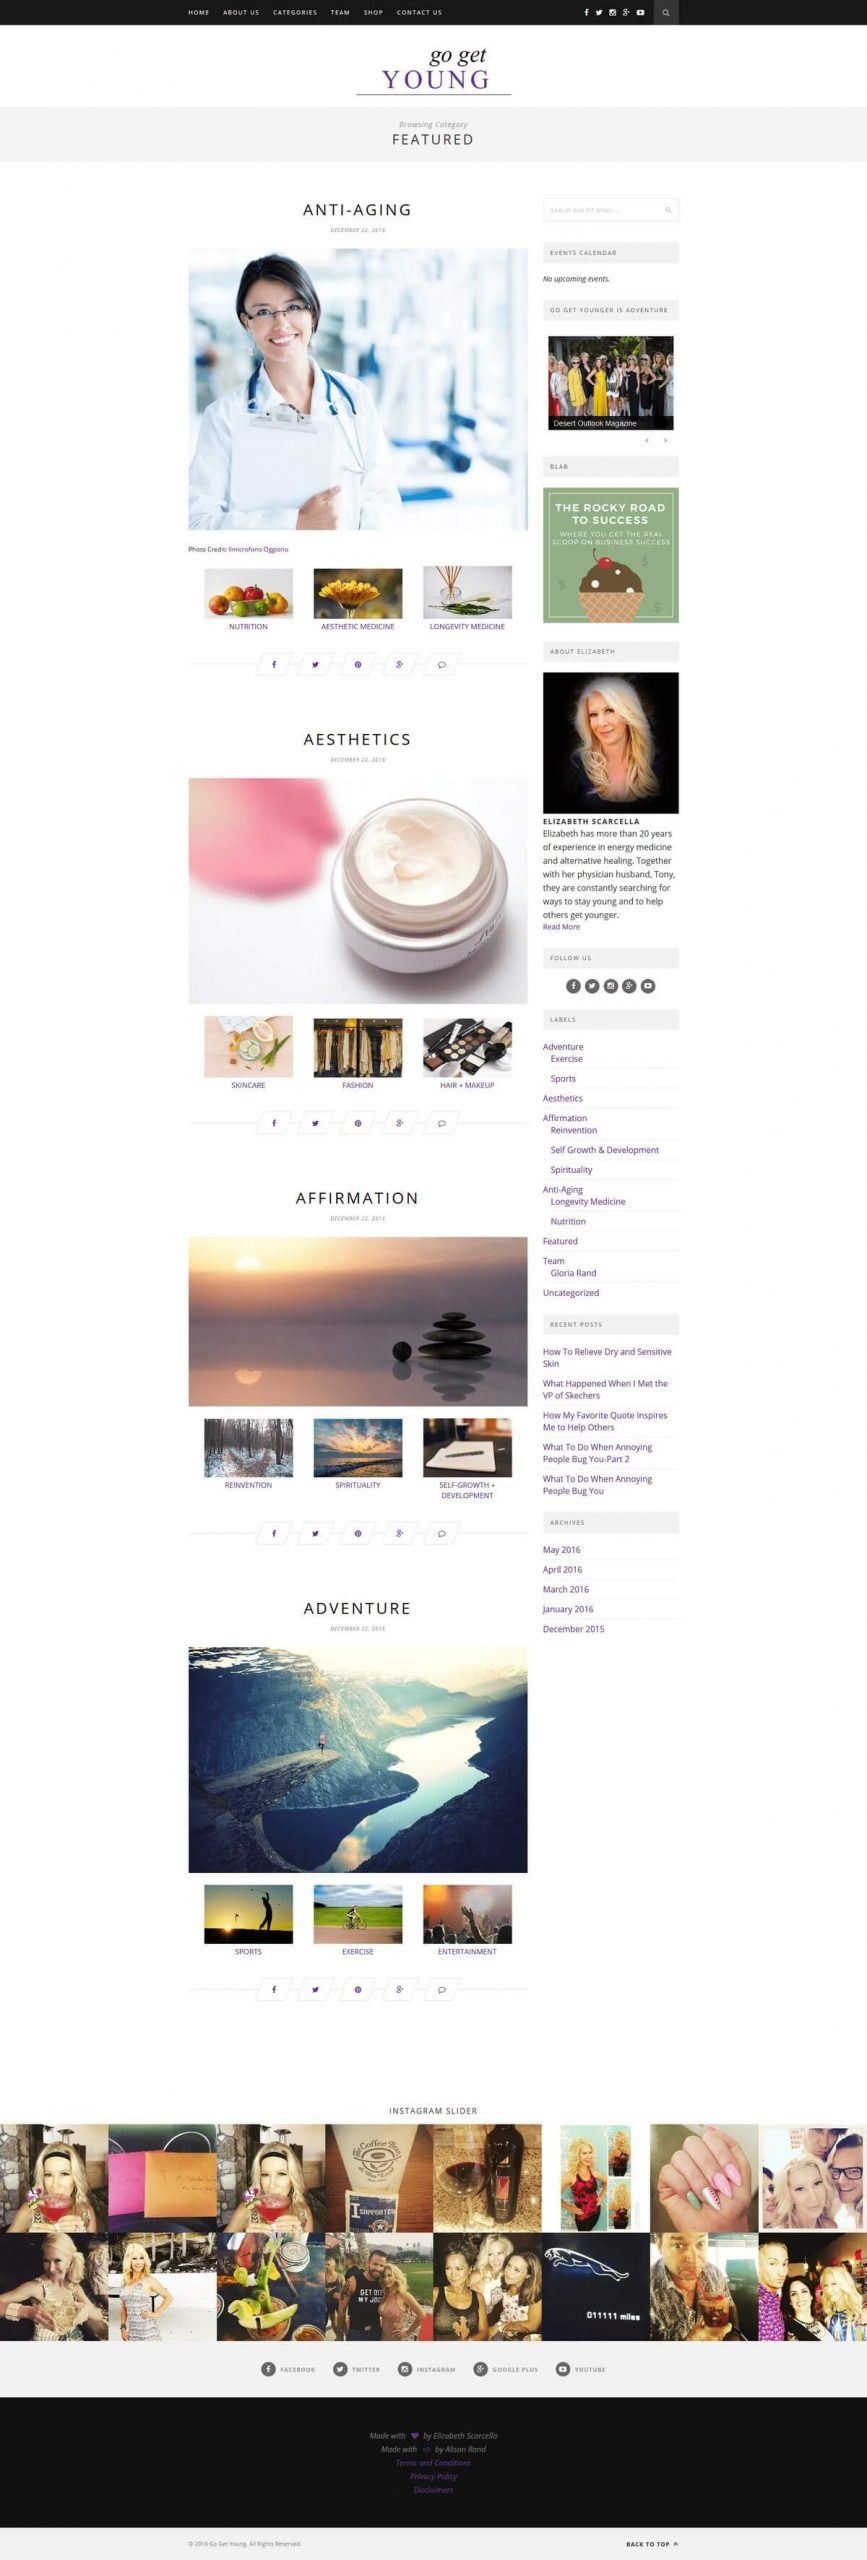 go_get_young_blog_home_page_design